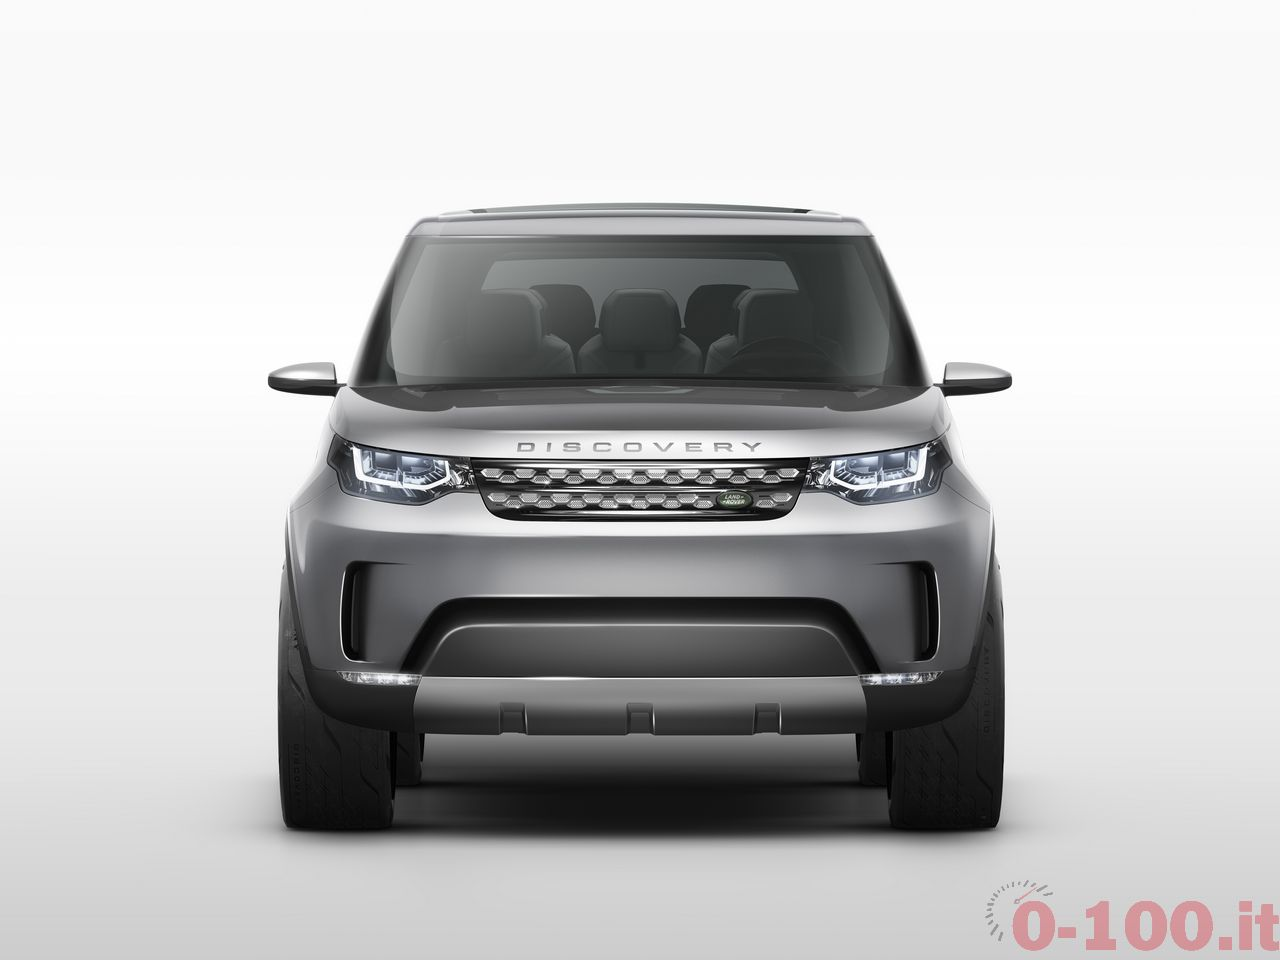 land-rover-discovery-vision-concept-suv-baselworld-2014_0-100_6